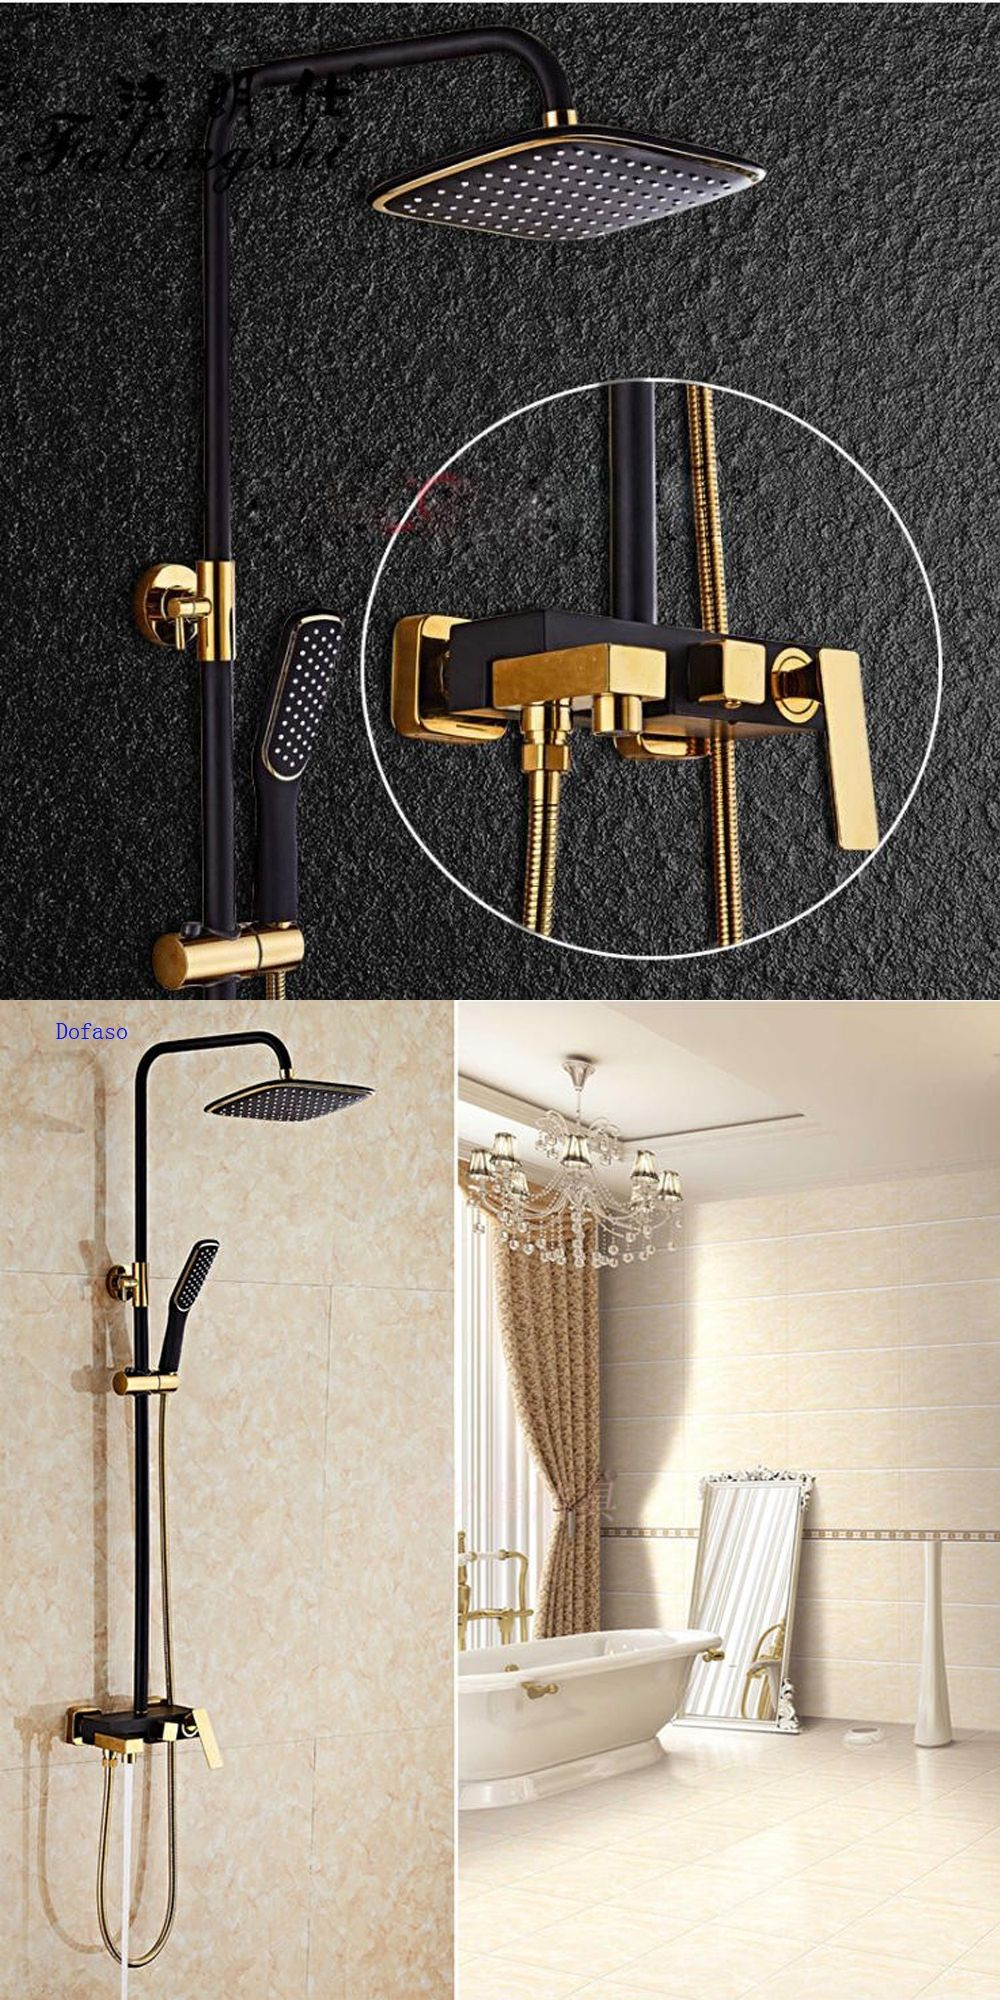 Dofaso black bathroom shower faucet black bath tap vintage shower ...